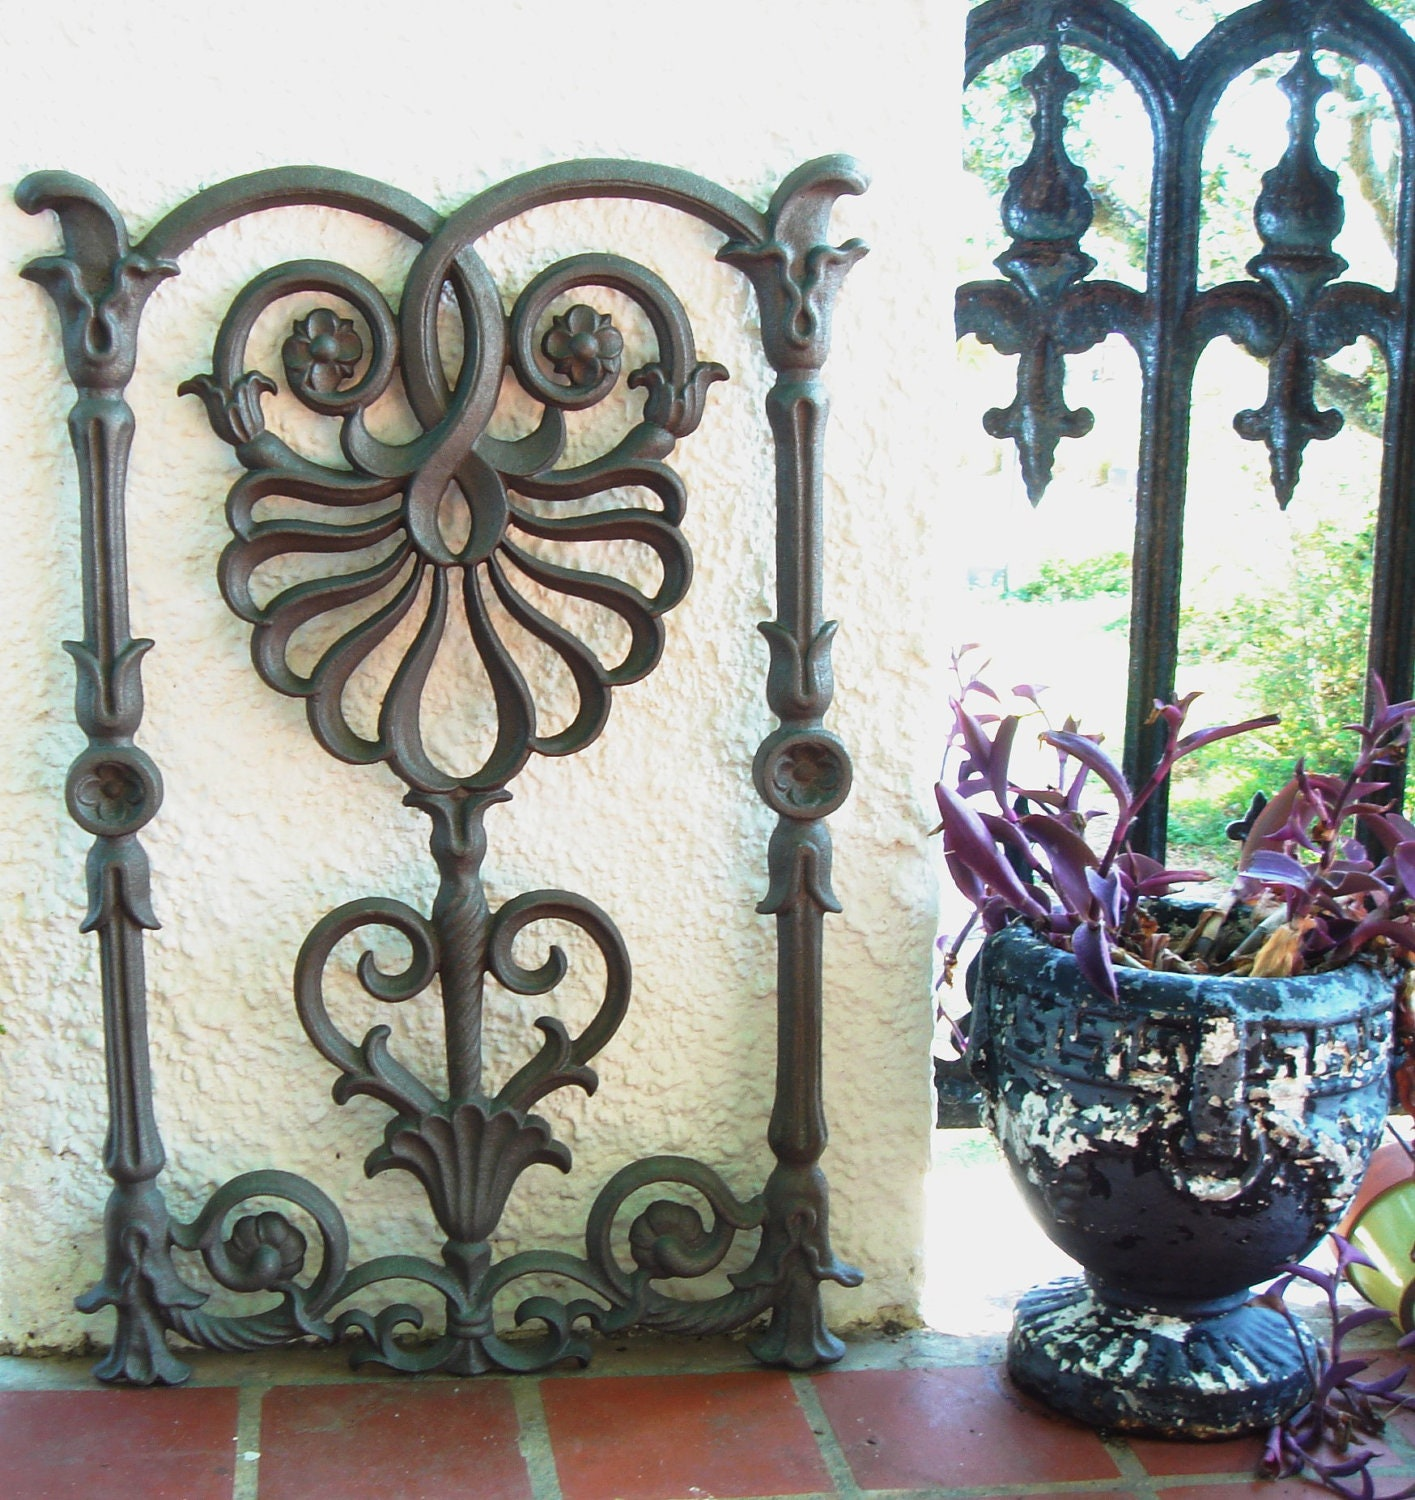 Cast Iron Flower Scroll Architectural Baluster by Theironsmith